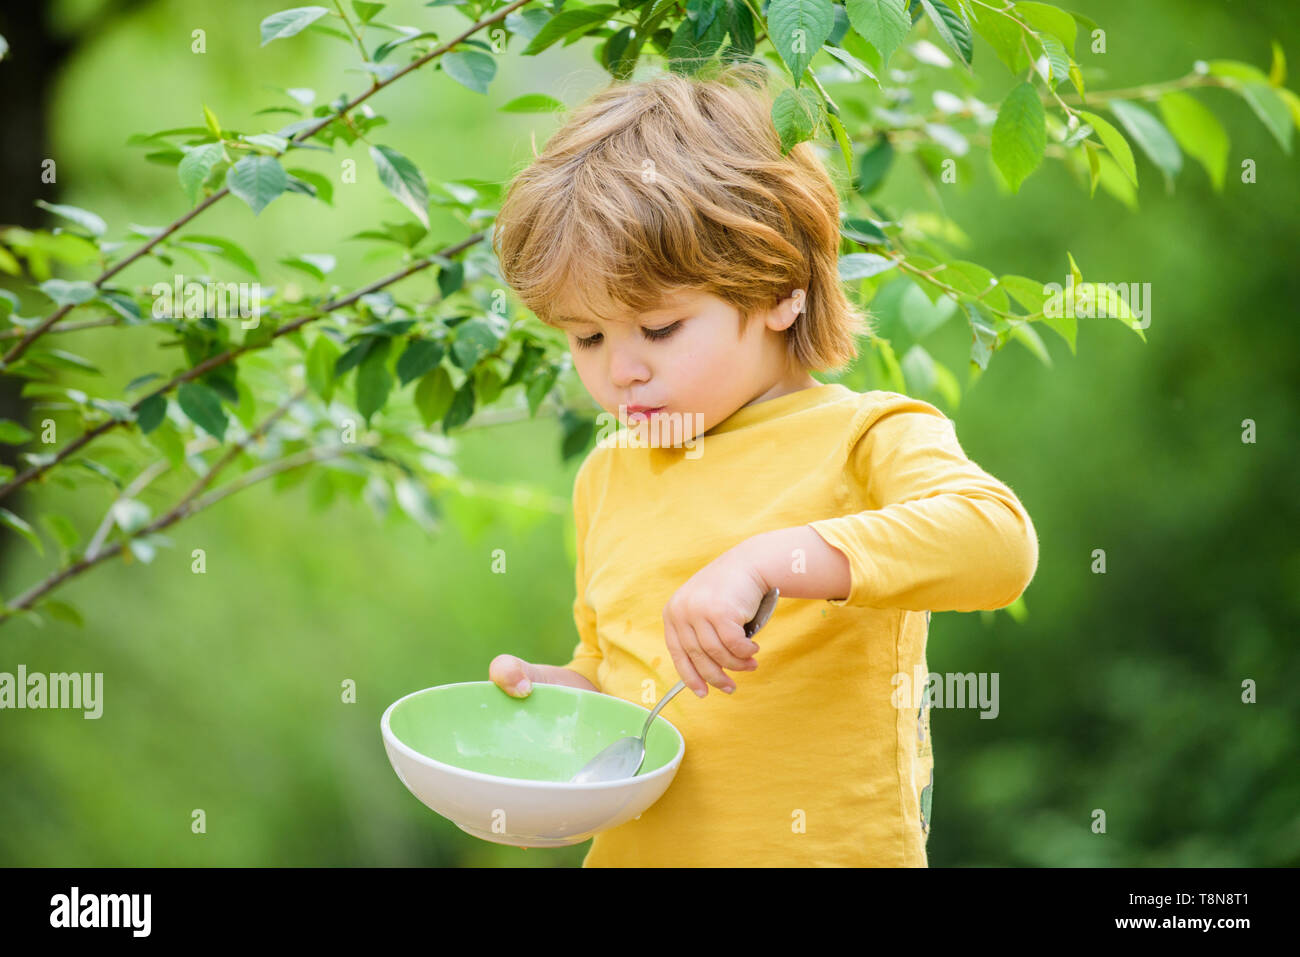 Small Boy Eating Outdoor Child Development Little Boy Eat Healthy Food Childhood Happiness Healthy Food And Dieting Family Day Son And Eating Milk Porridge Cereal For Breakfast Good Morning Stock Photo